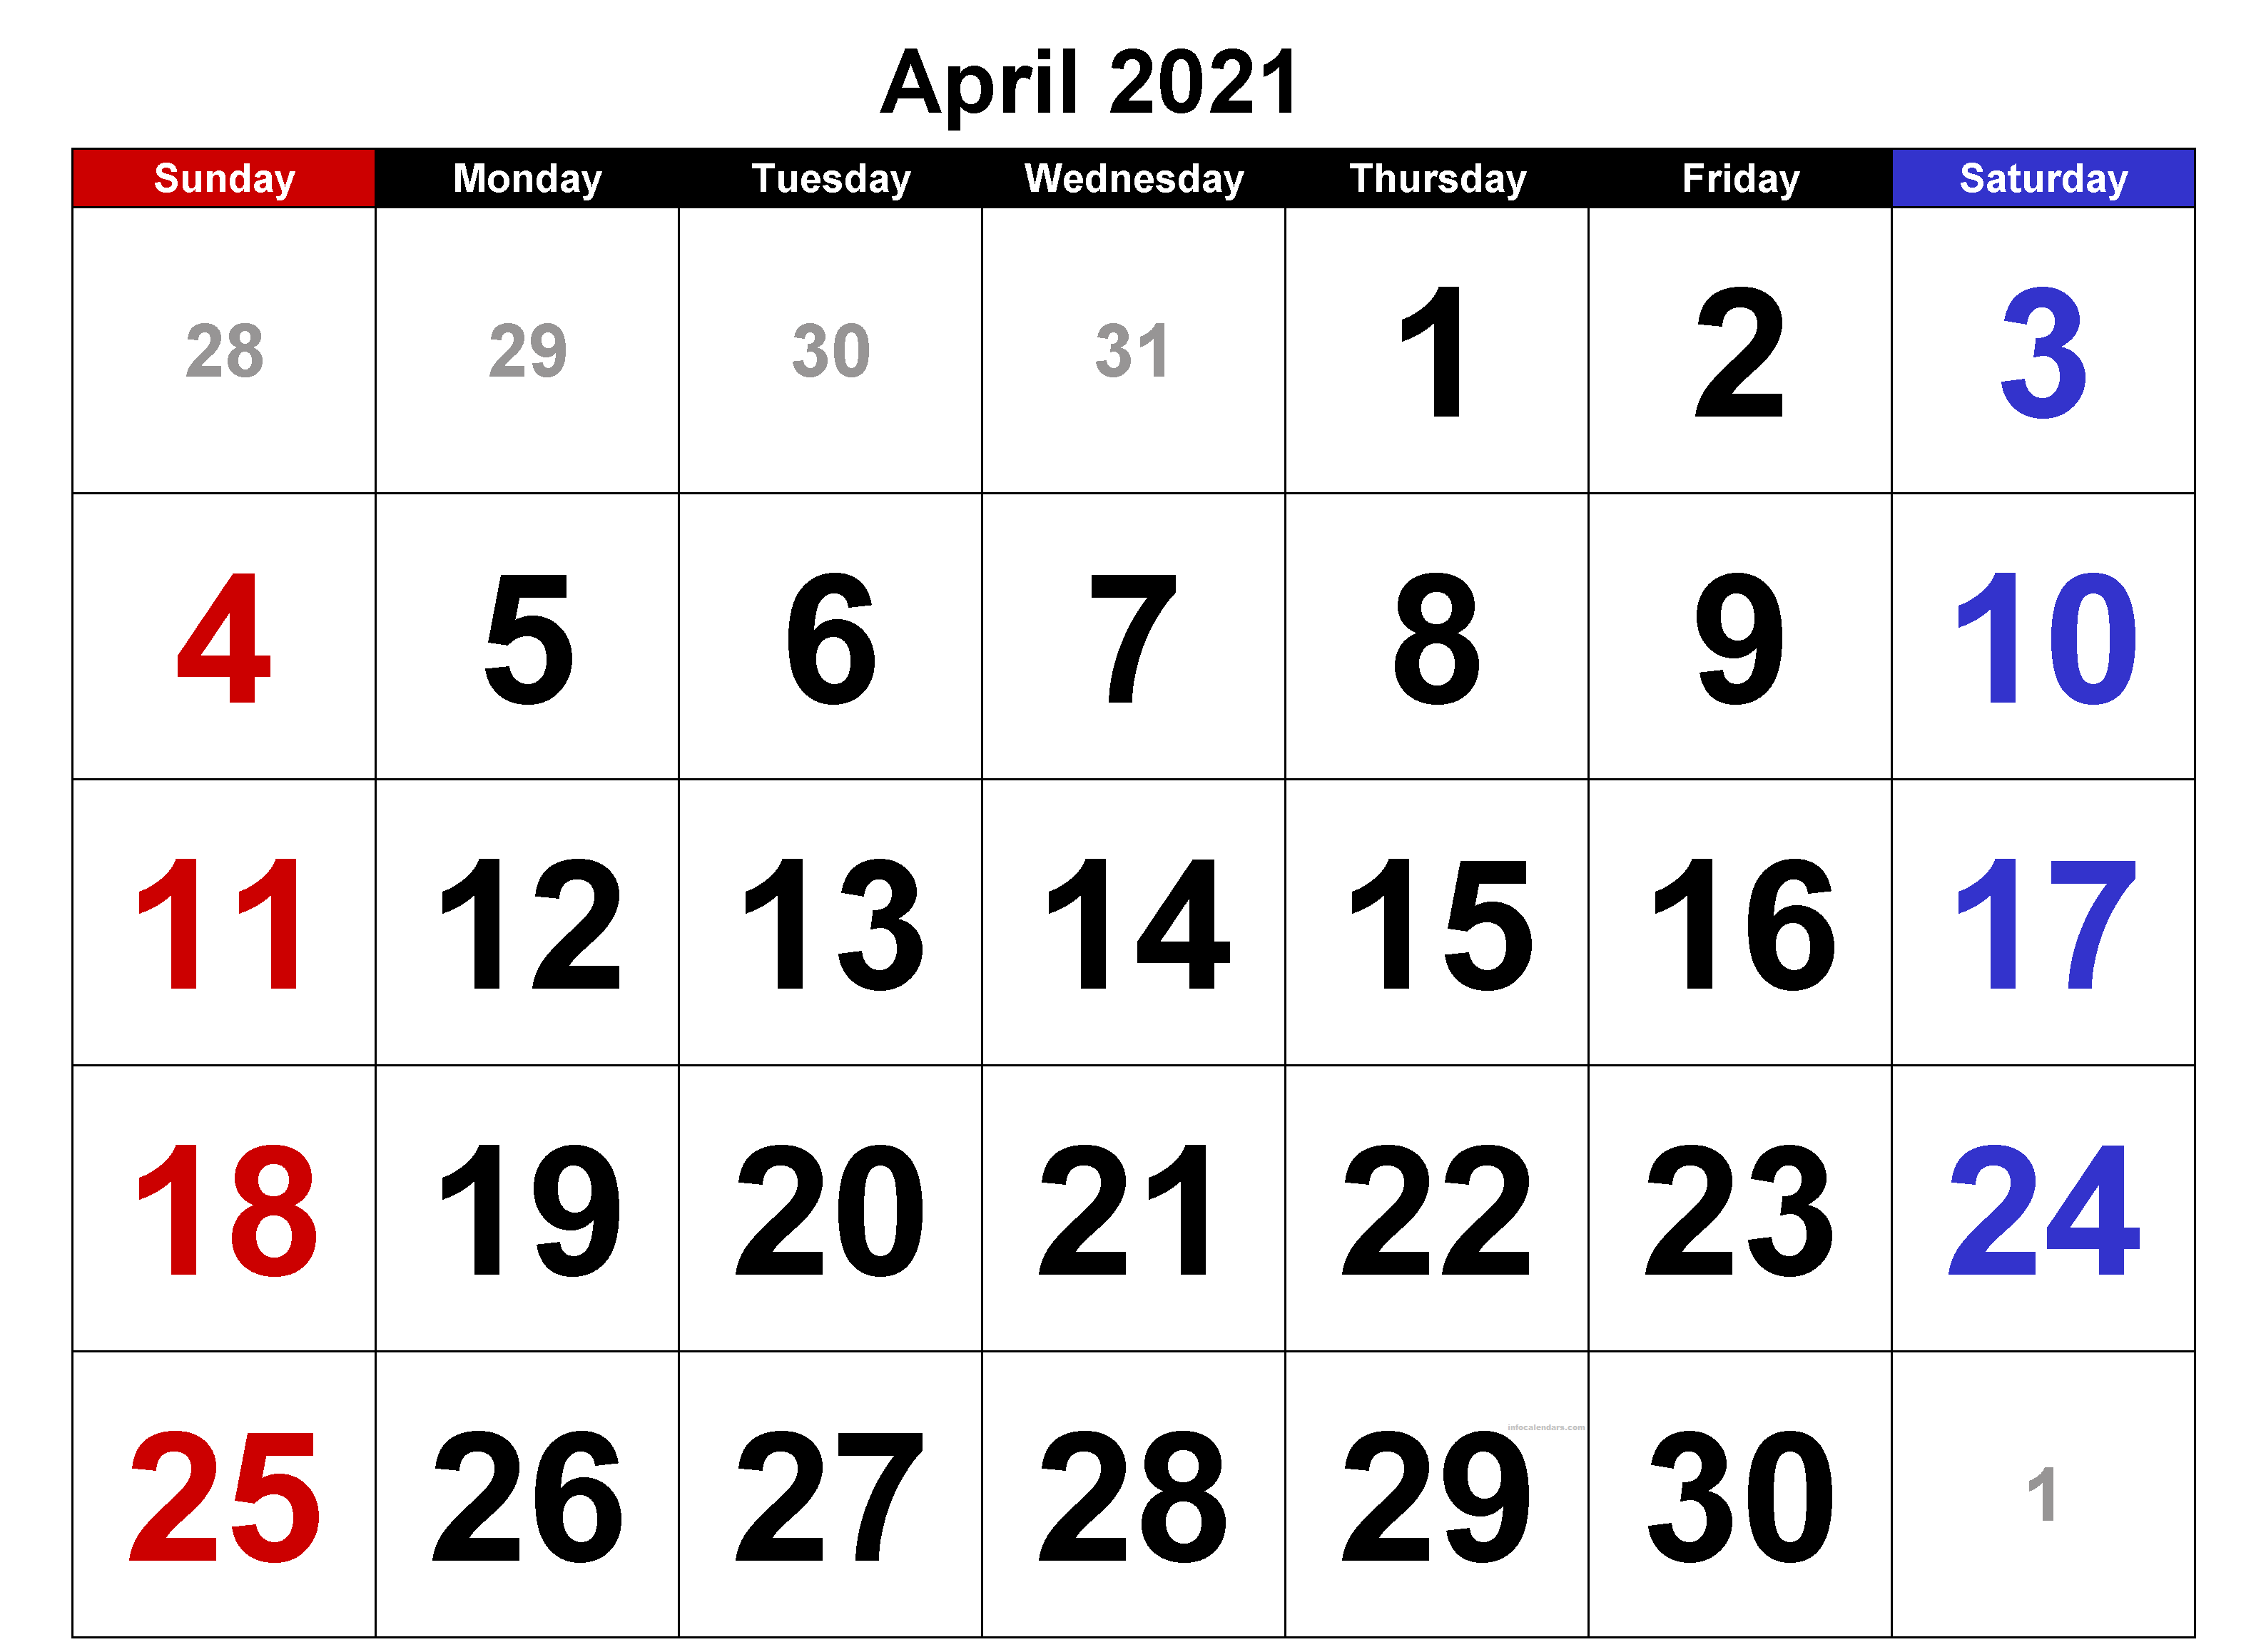 April 2021 Calendar Word with Holidays